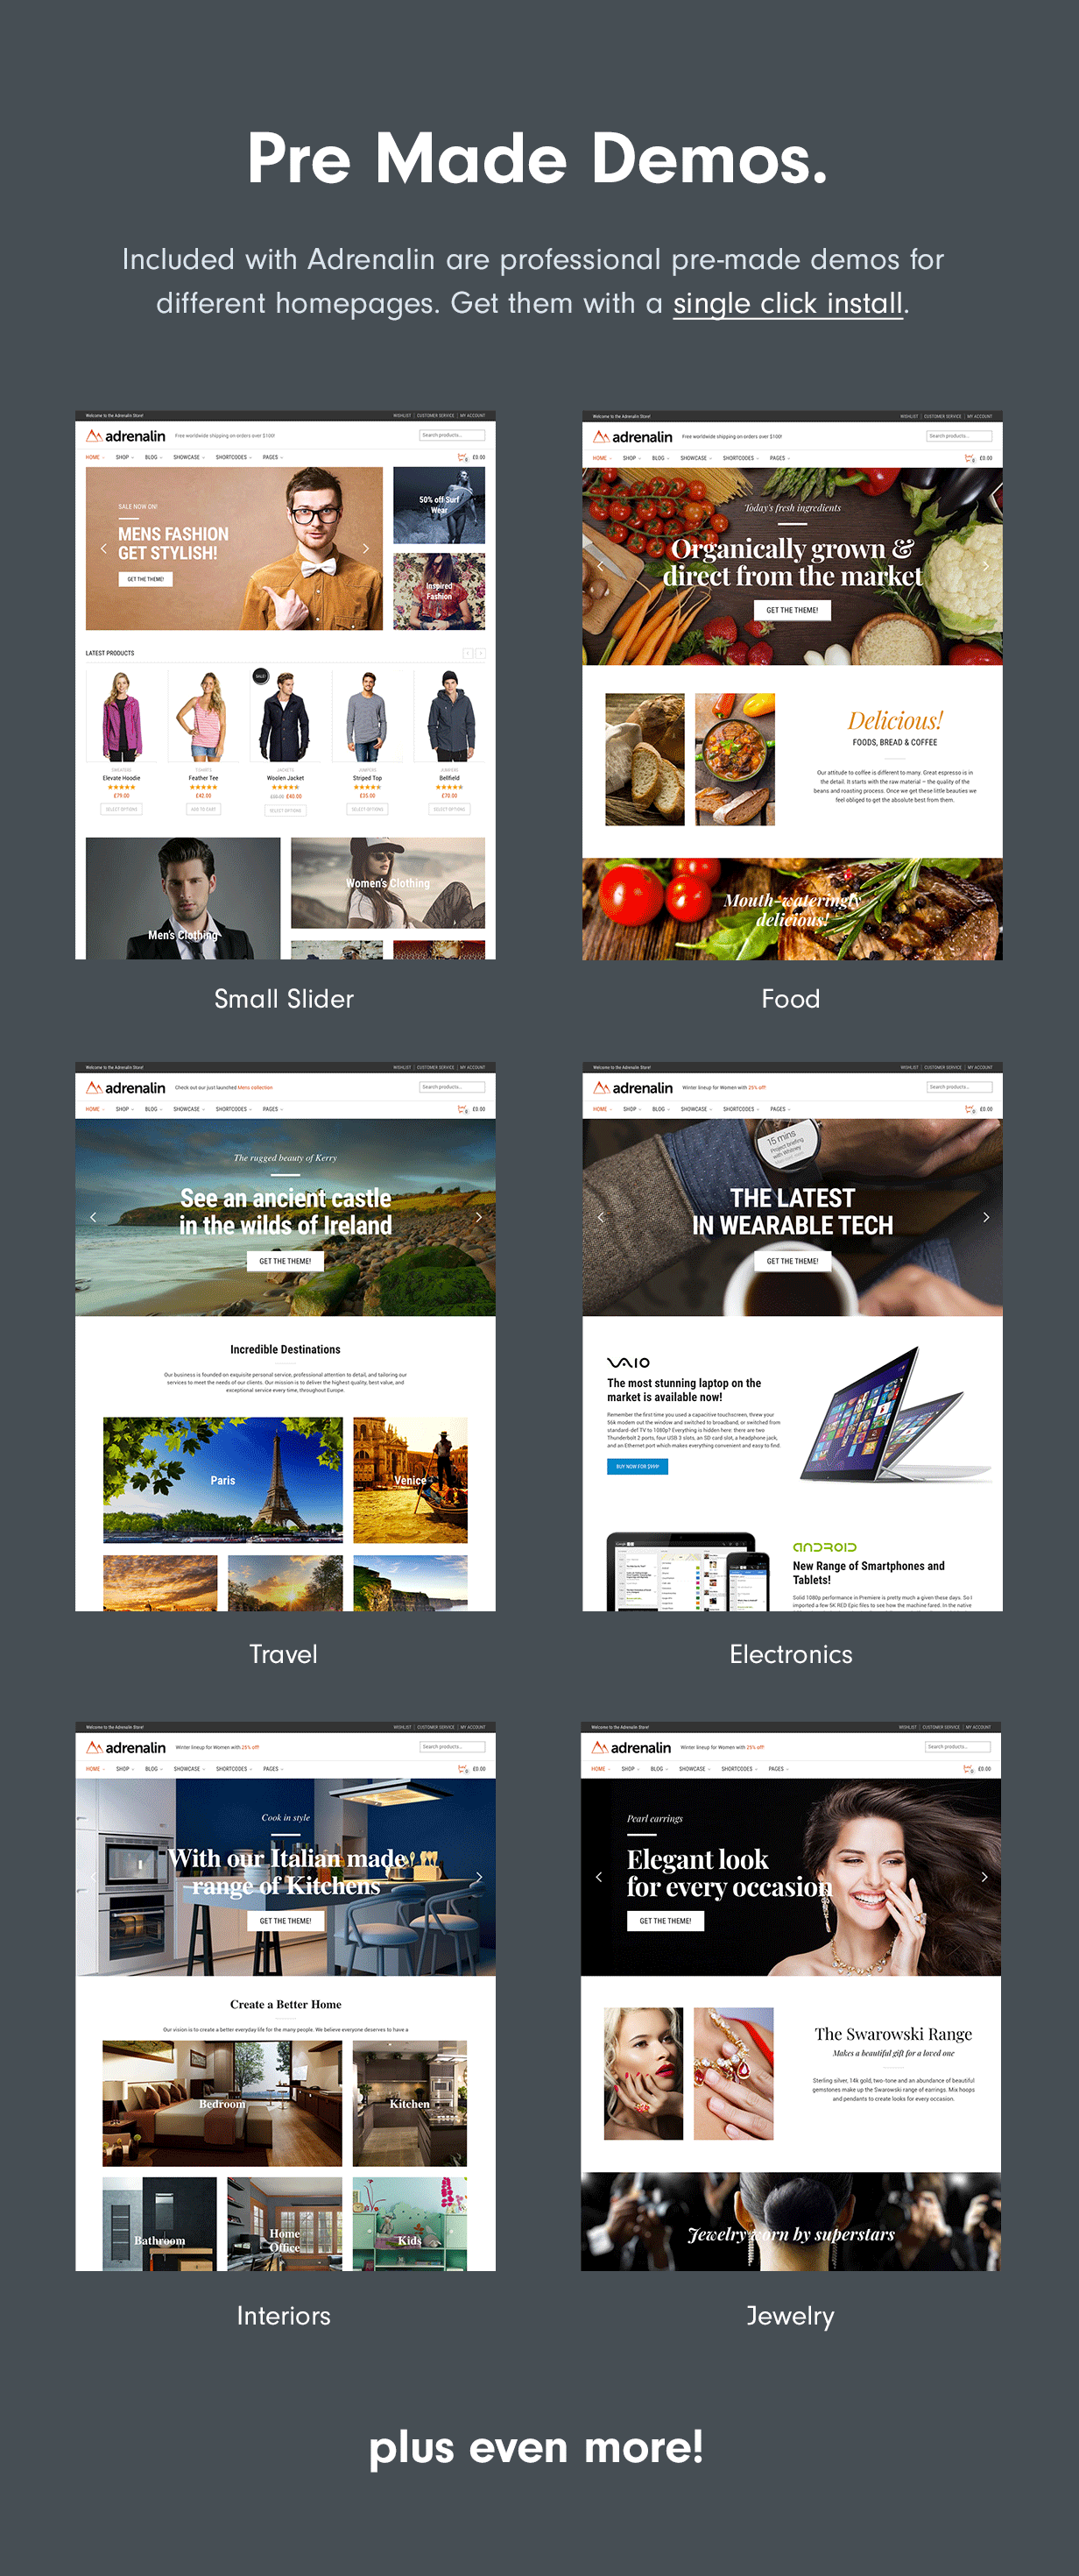 10 Homepages